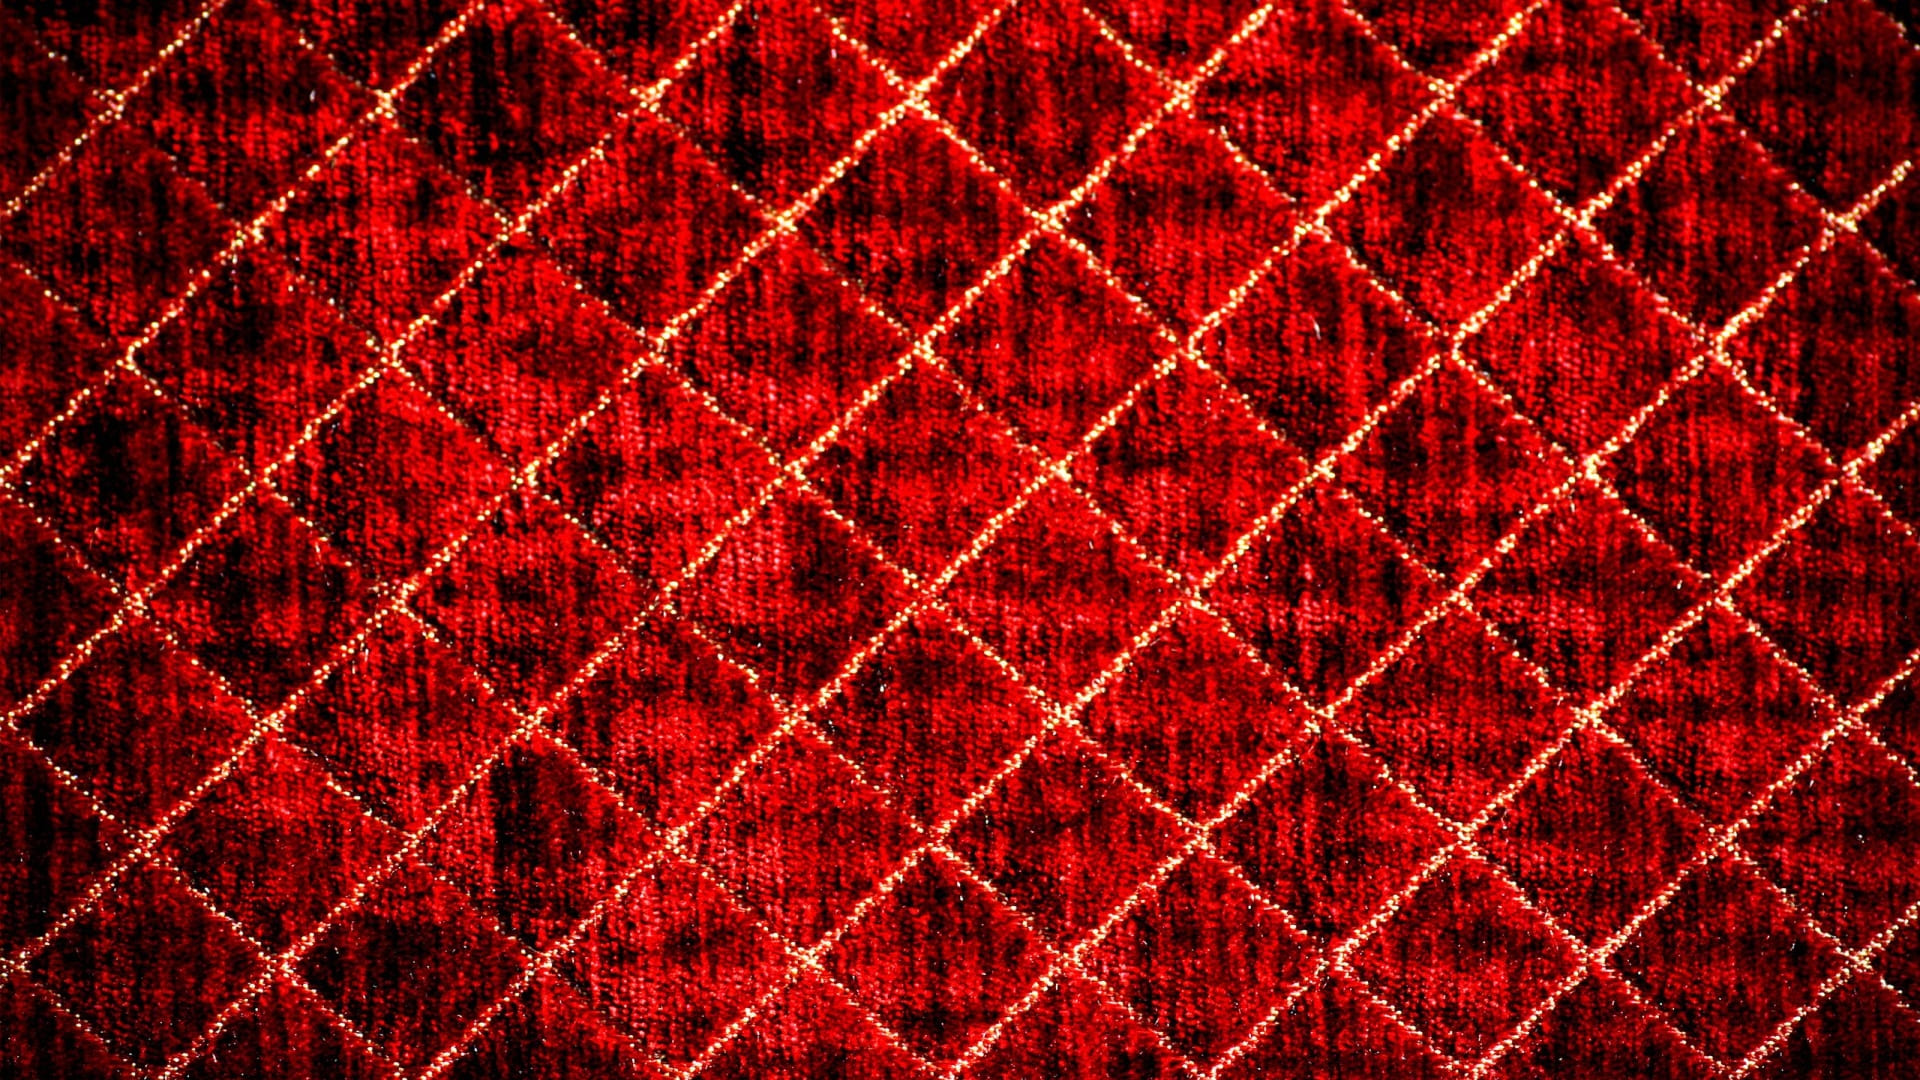 Red pattern backgrounds